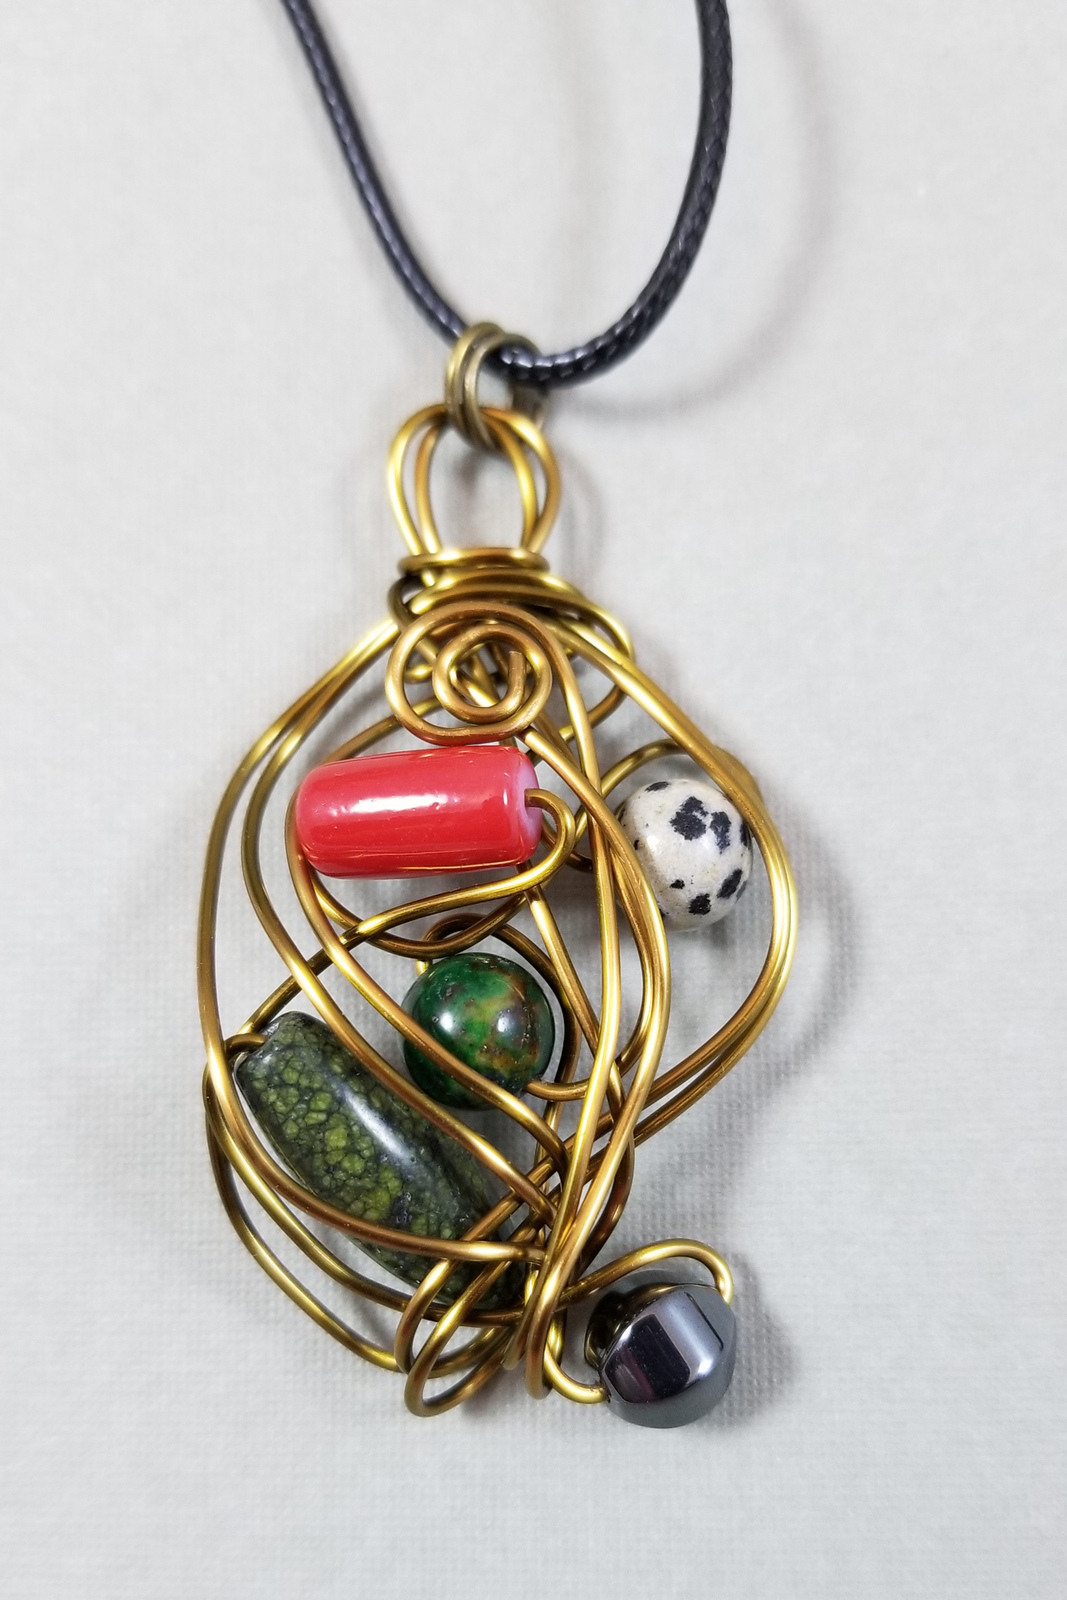 Primary image for Wire wrapped pendant, Spinner, Bright colors, Kinetic art, Unique, Handmade